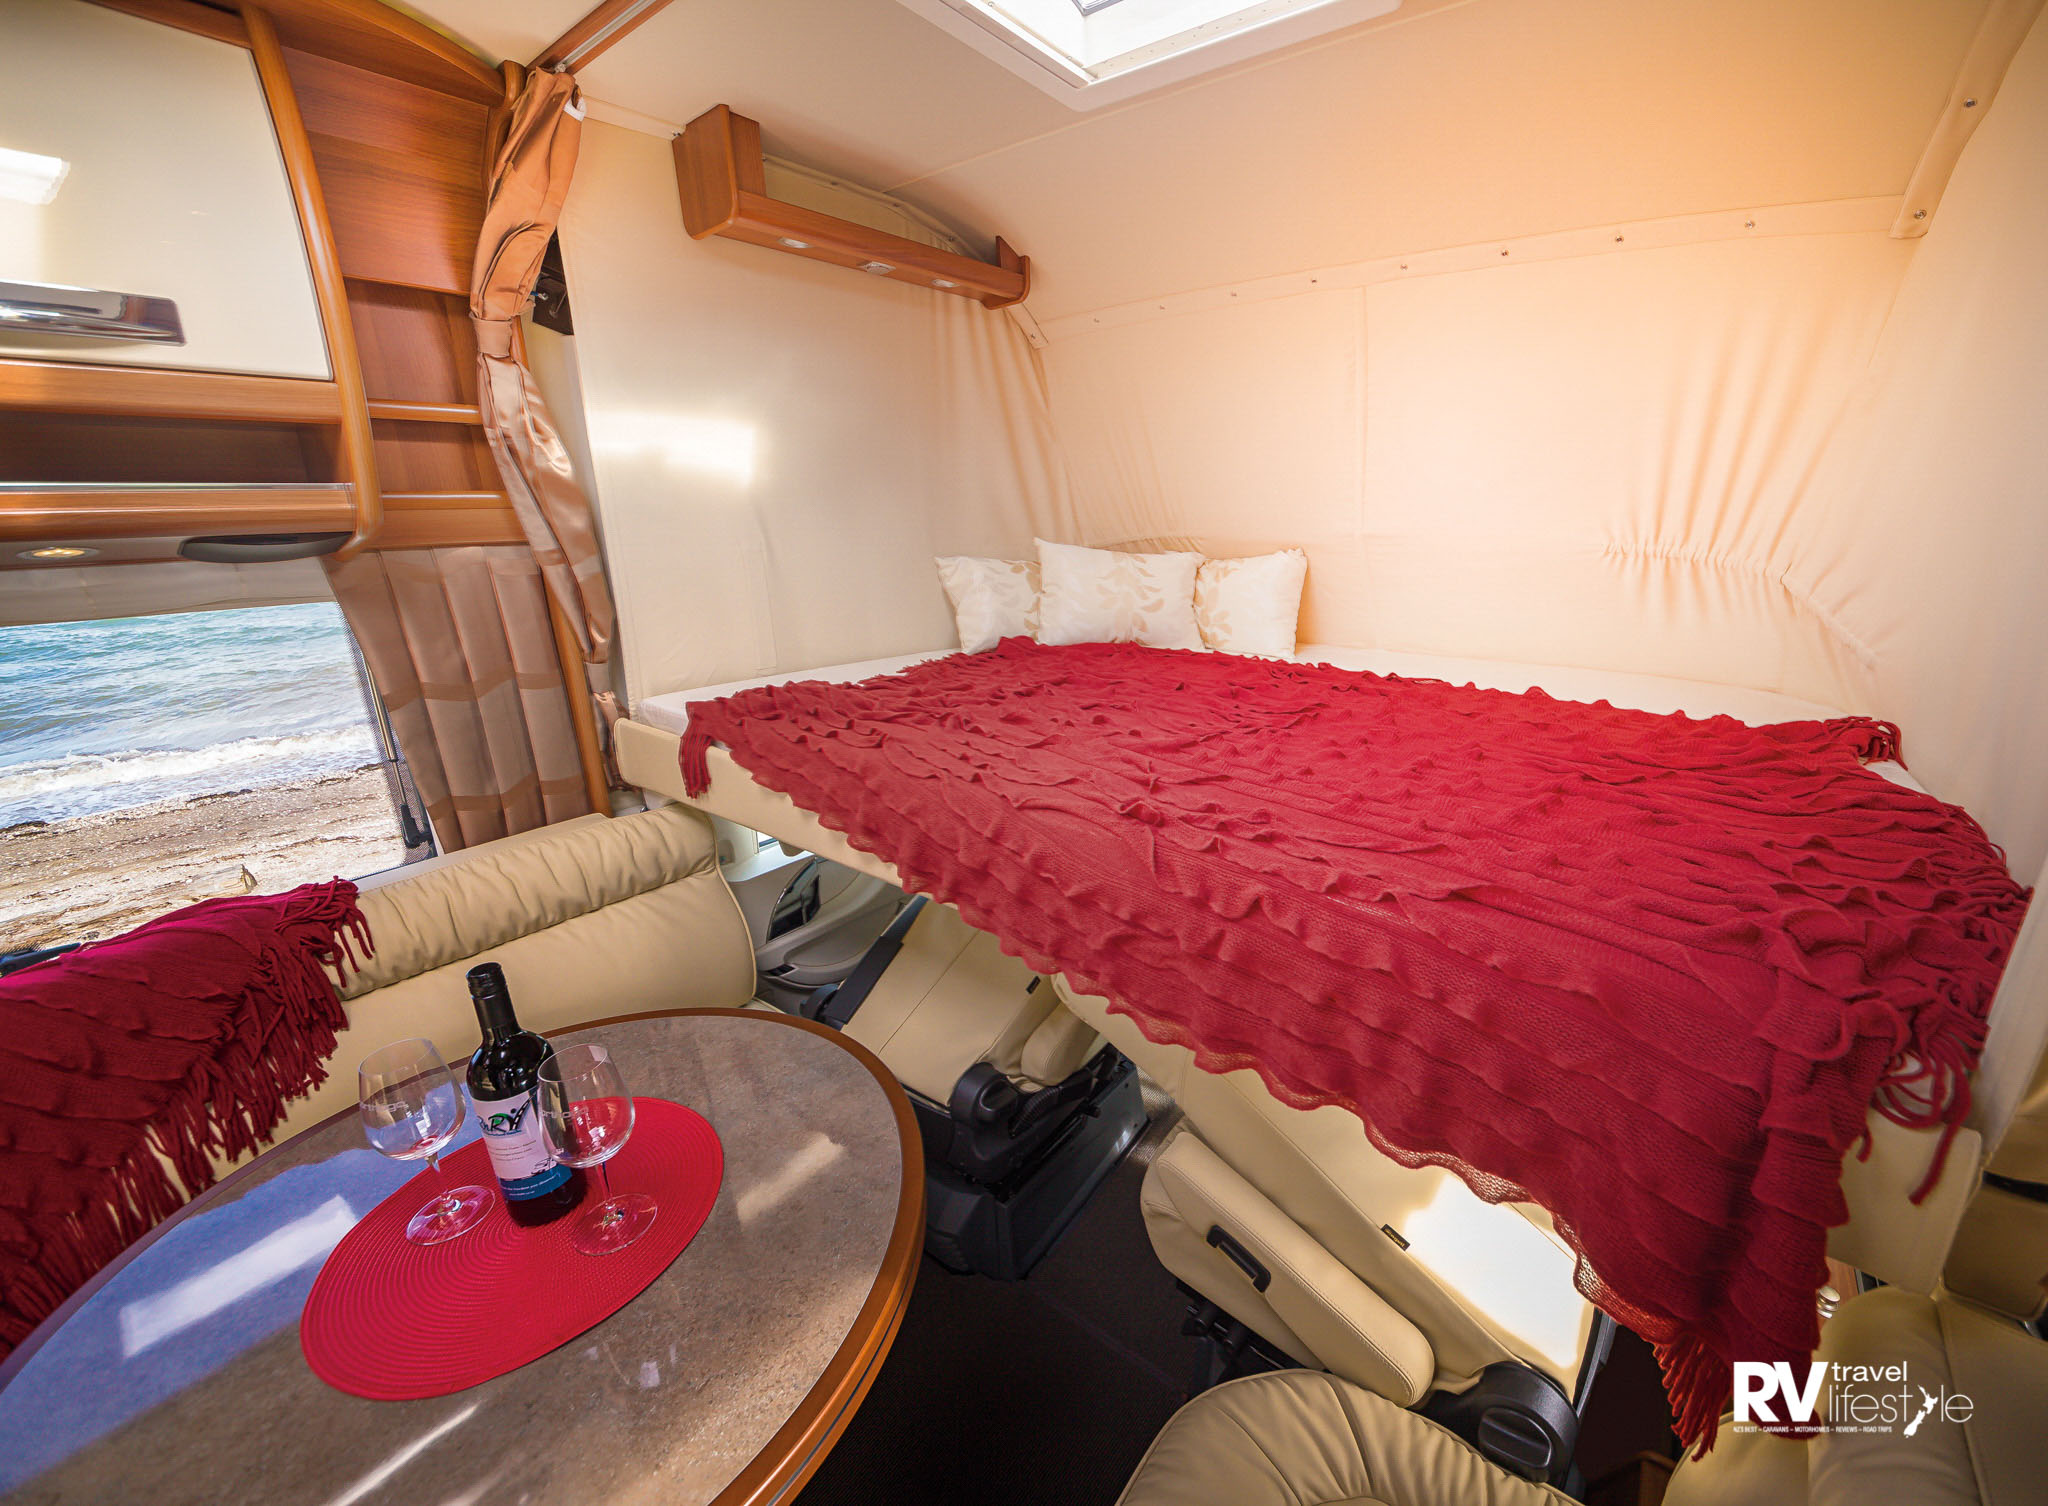 The hidden bed comes down from the ceiling over the front cab area, leaving the dining area free – note the storage shelf and LED lighting up the top, and a pull-across privacy screen